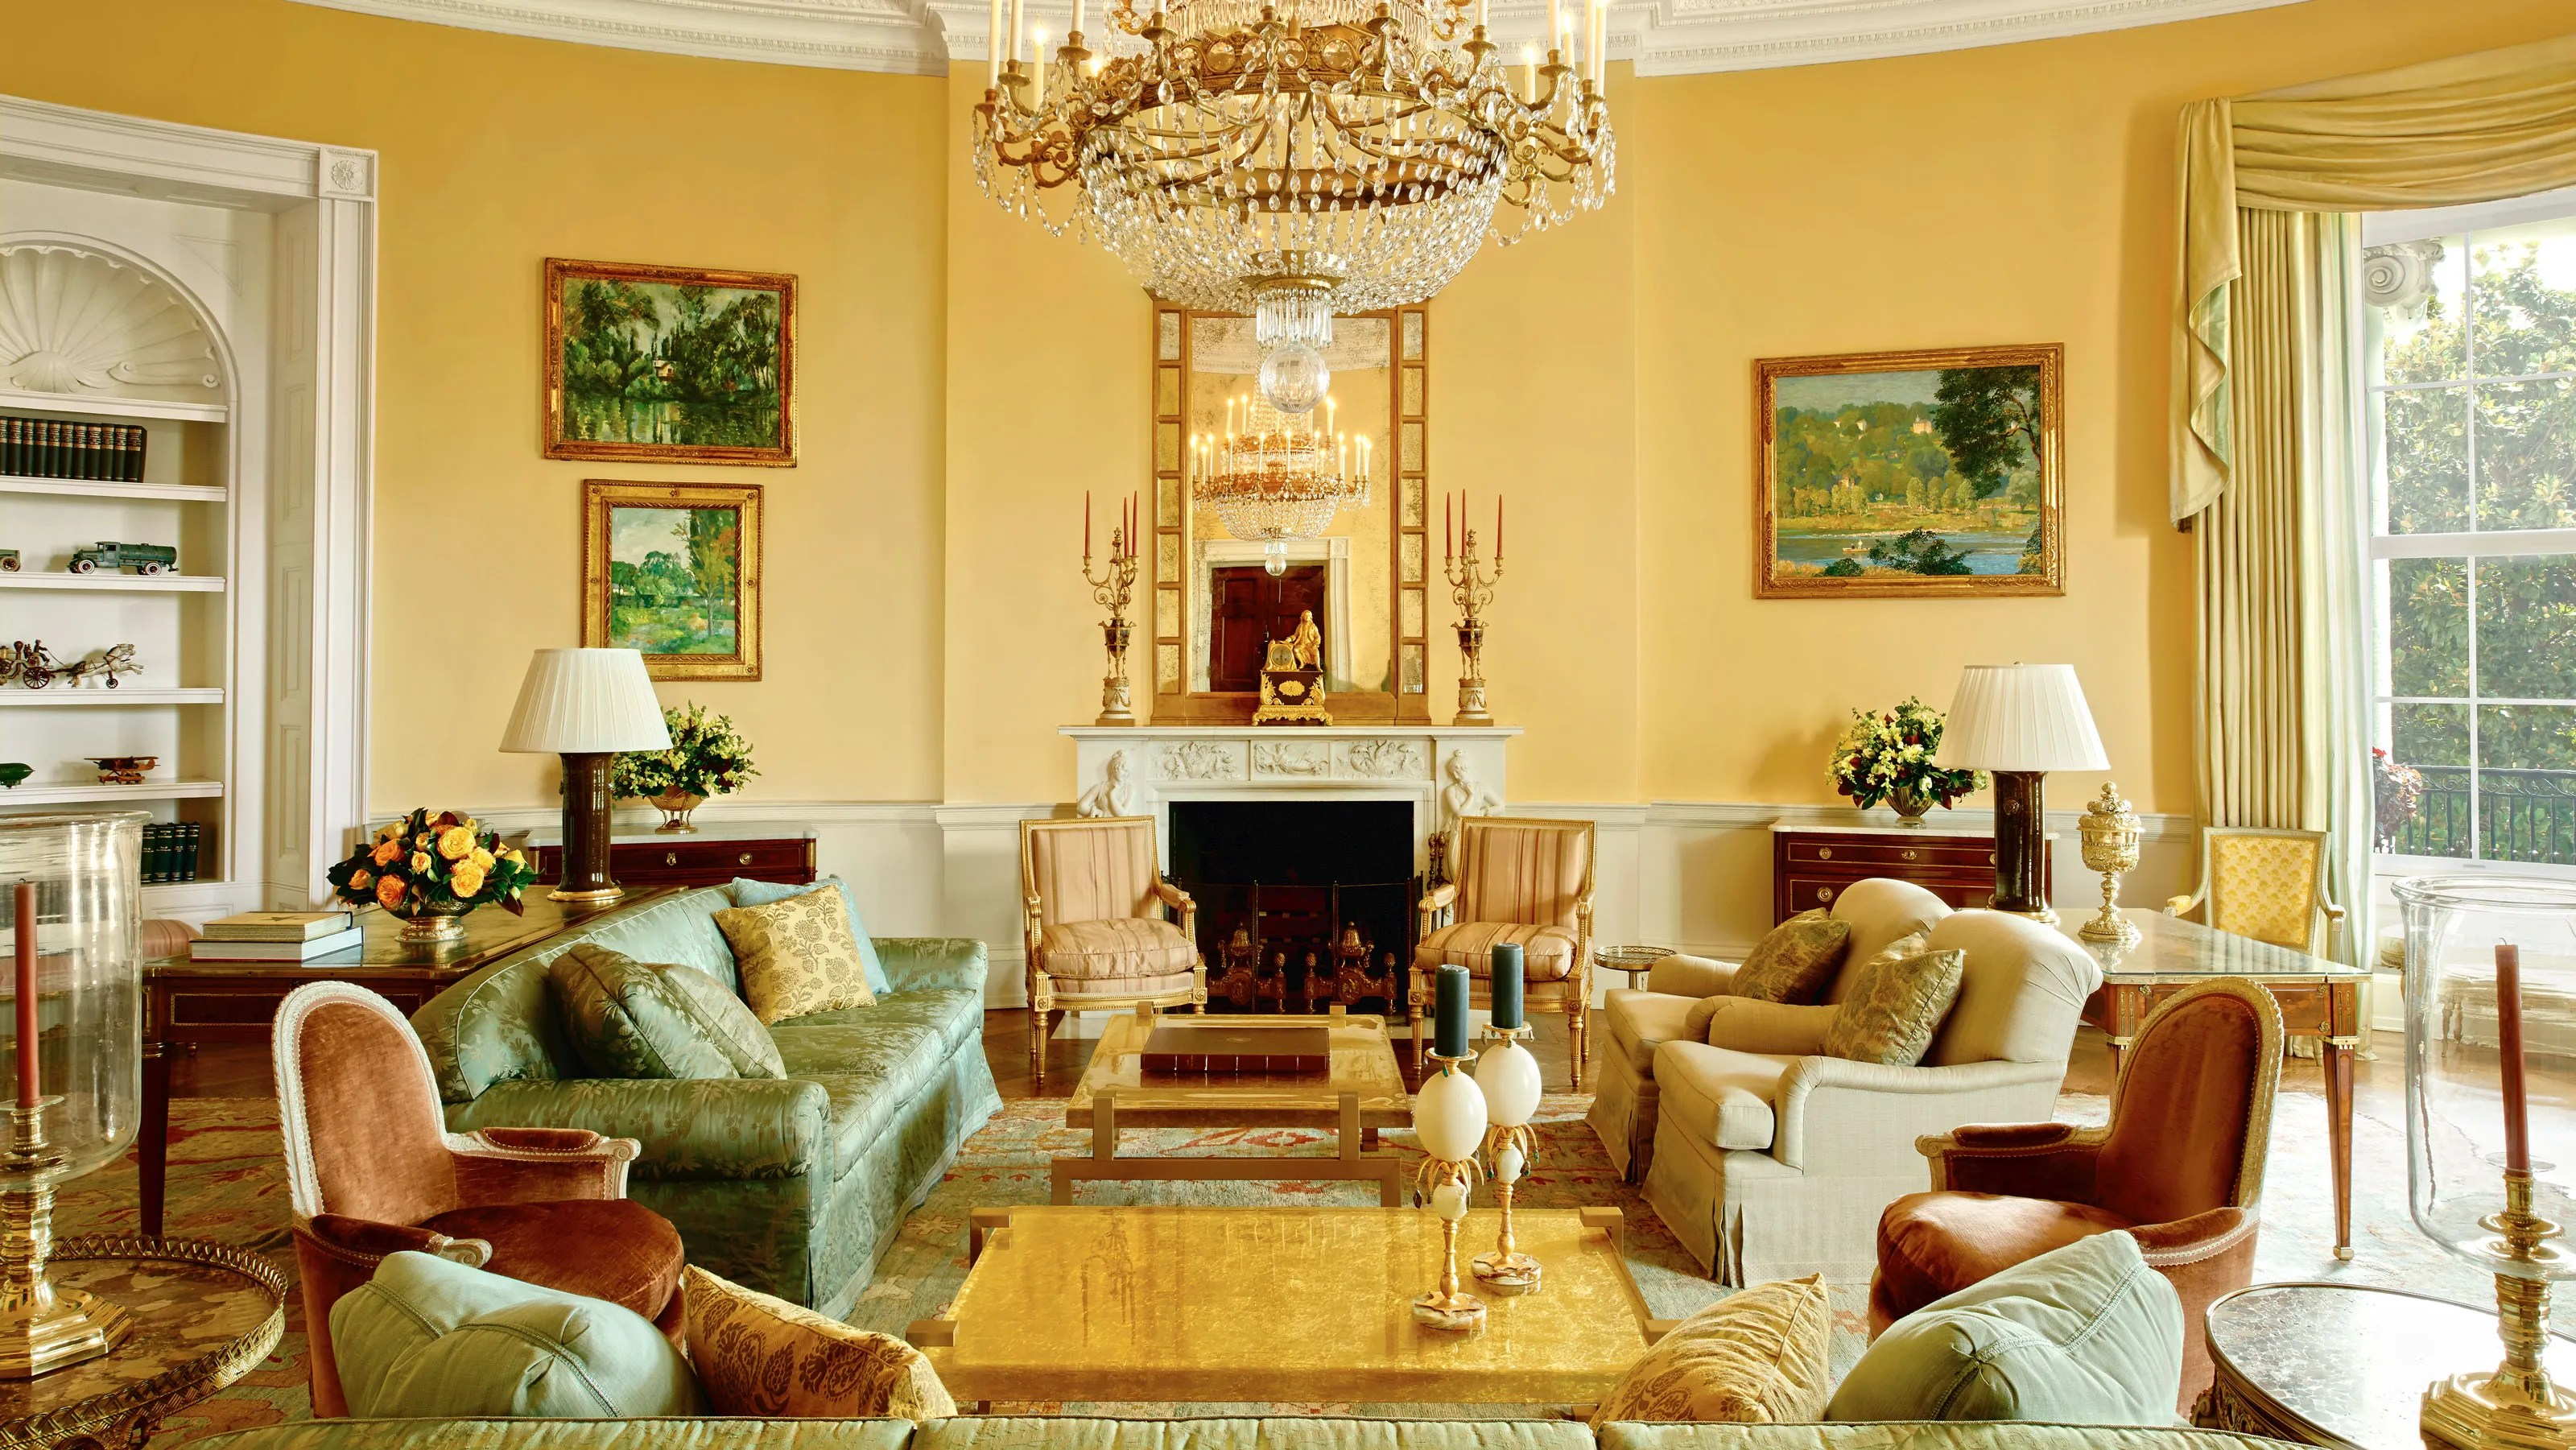 The Obama Familys Stylish Private World Inside the White House Photos  Architectural Digest